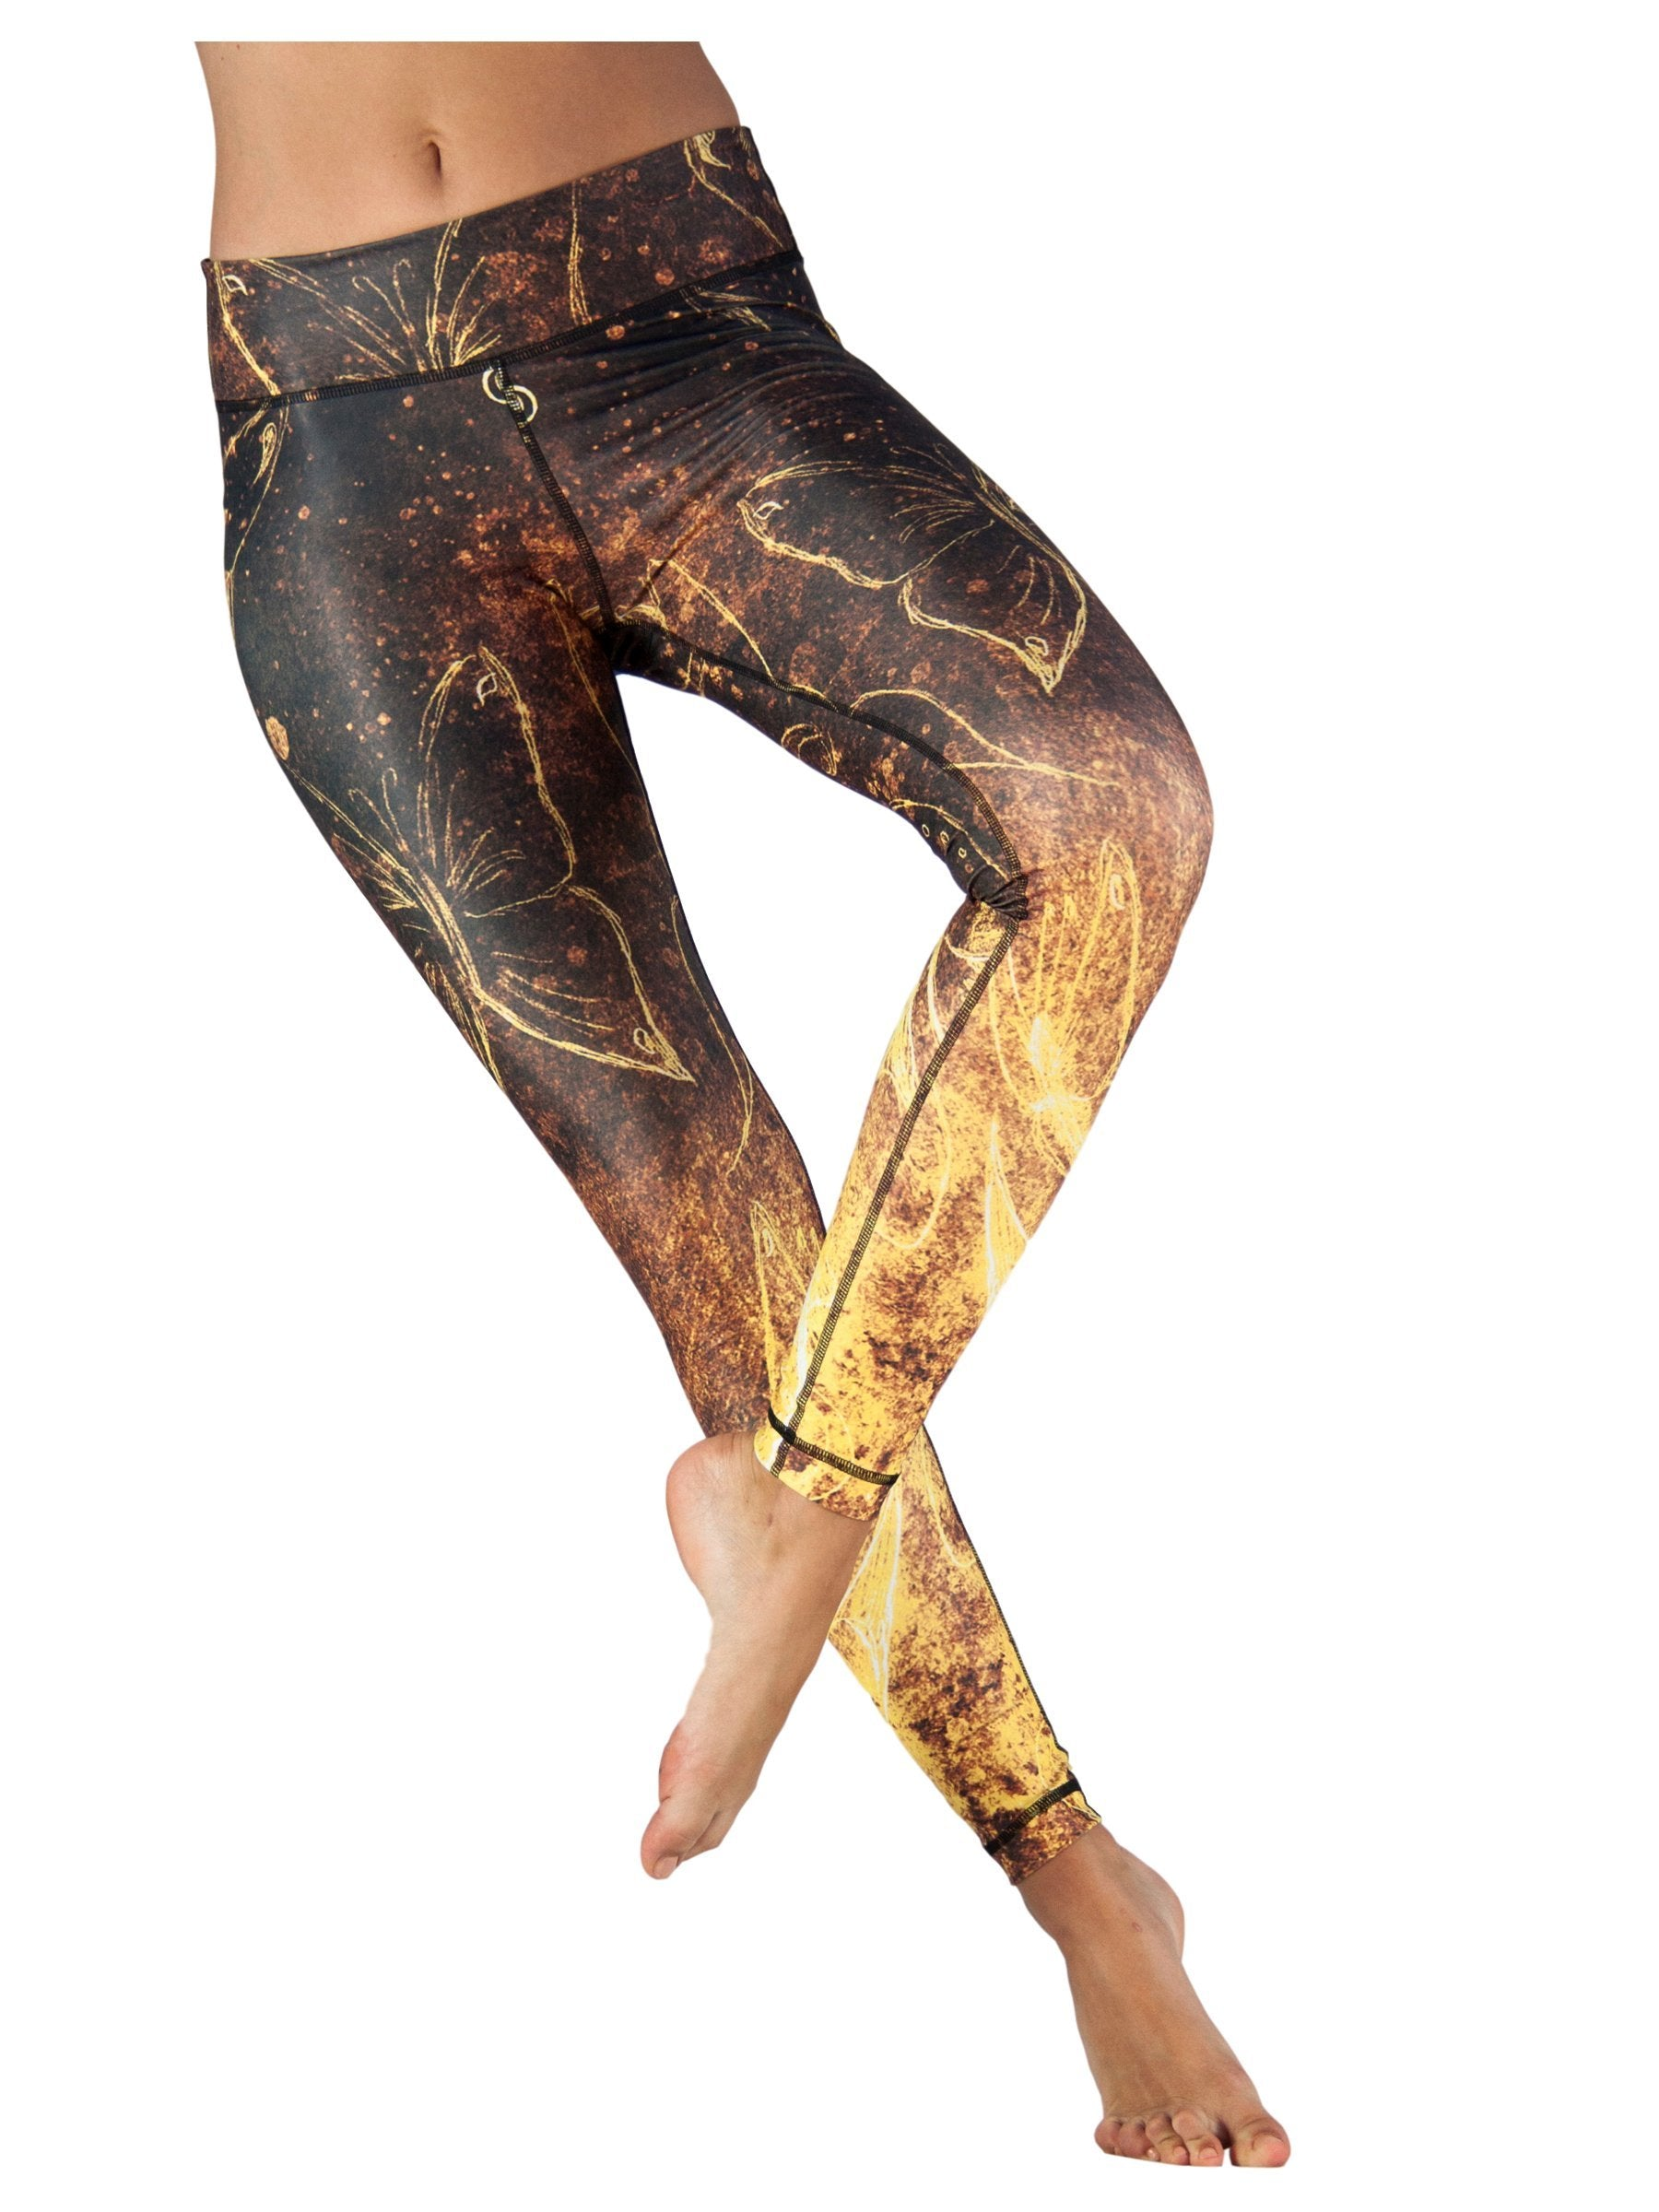 Bell-Rock Butterfly by Niyama - High Quality, Yoga Legging for Movement Artists.